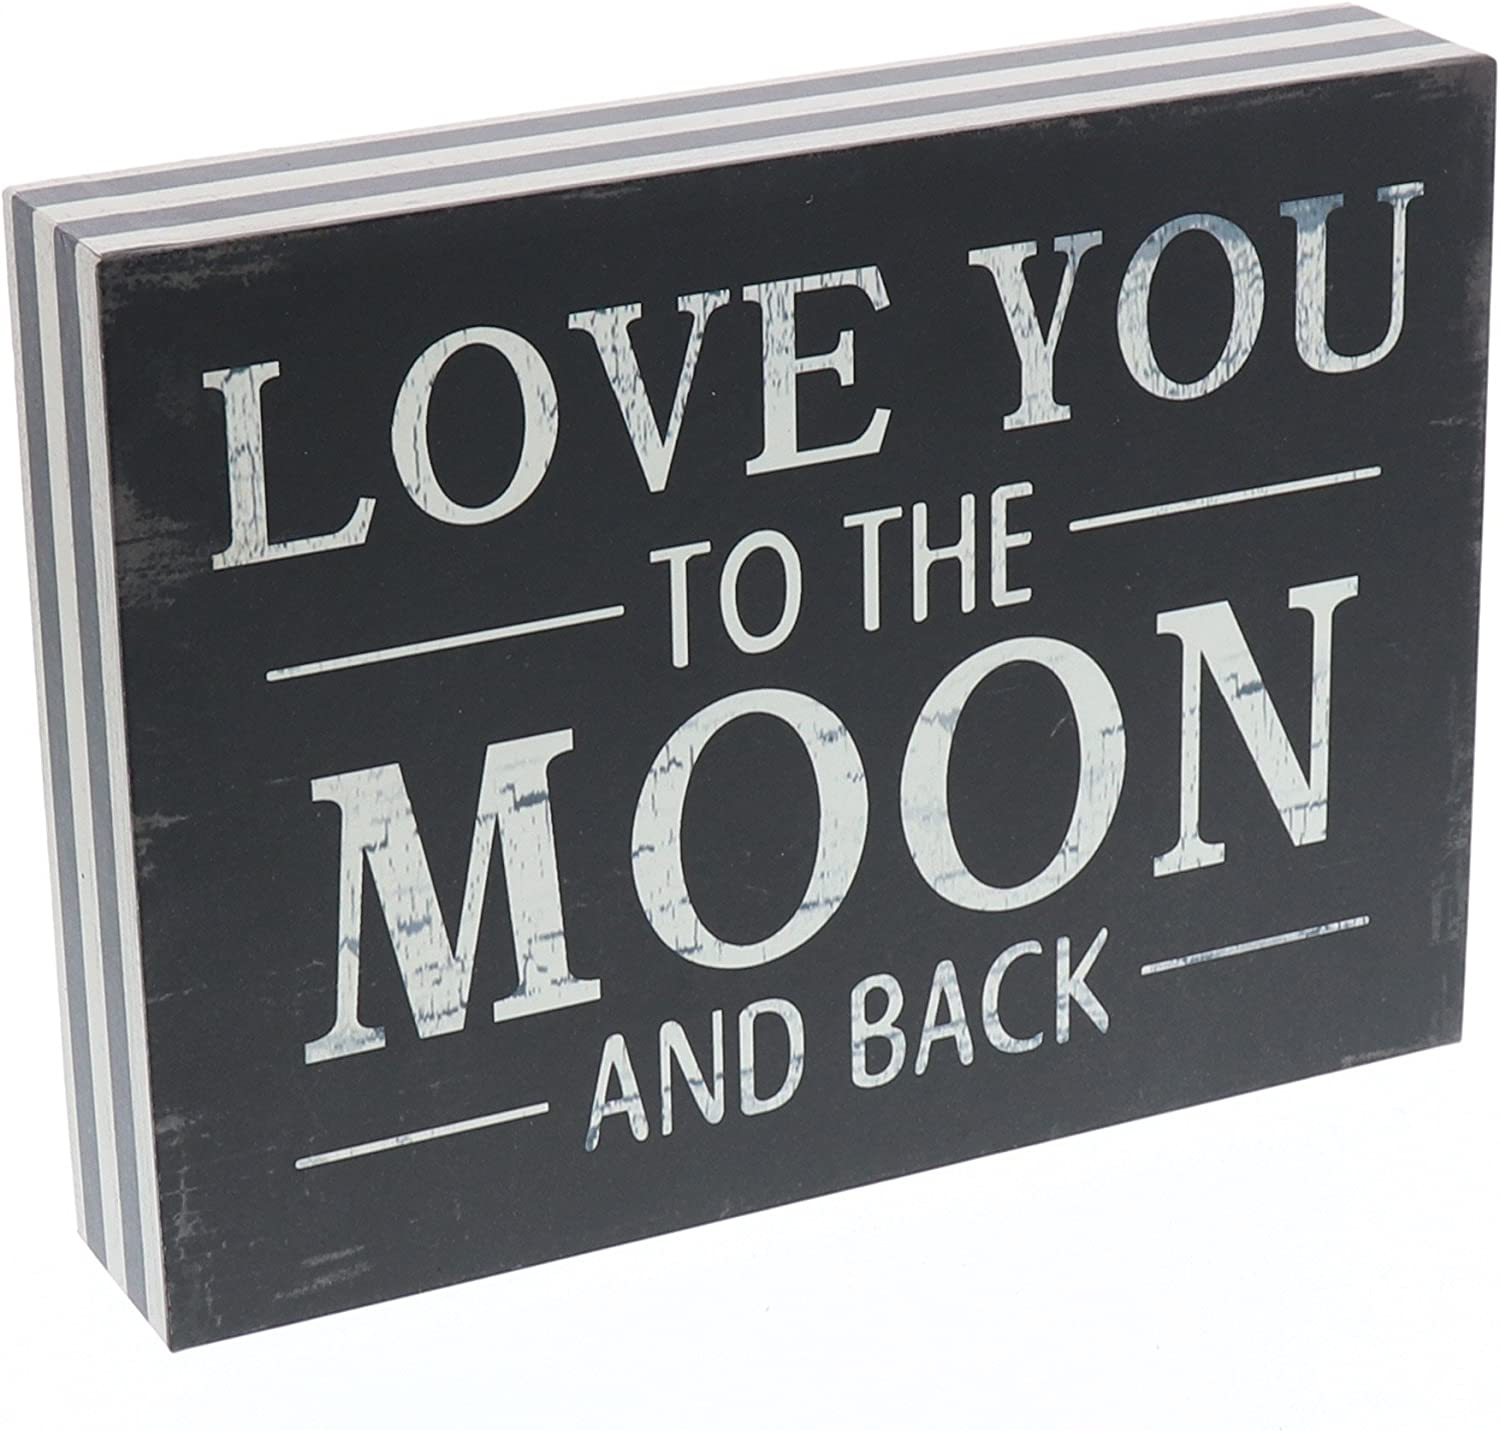 Barnyard Designs Love You to The Moon and Back Wooden Box Wall Art Sign, Primitive Country Farmhouse Home Decor Sign with Sayings 8 x 6